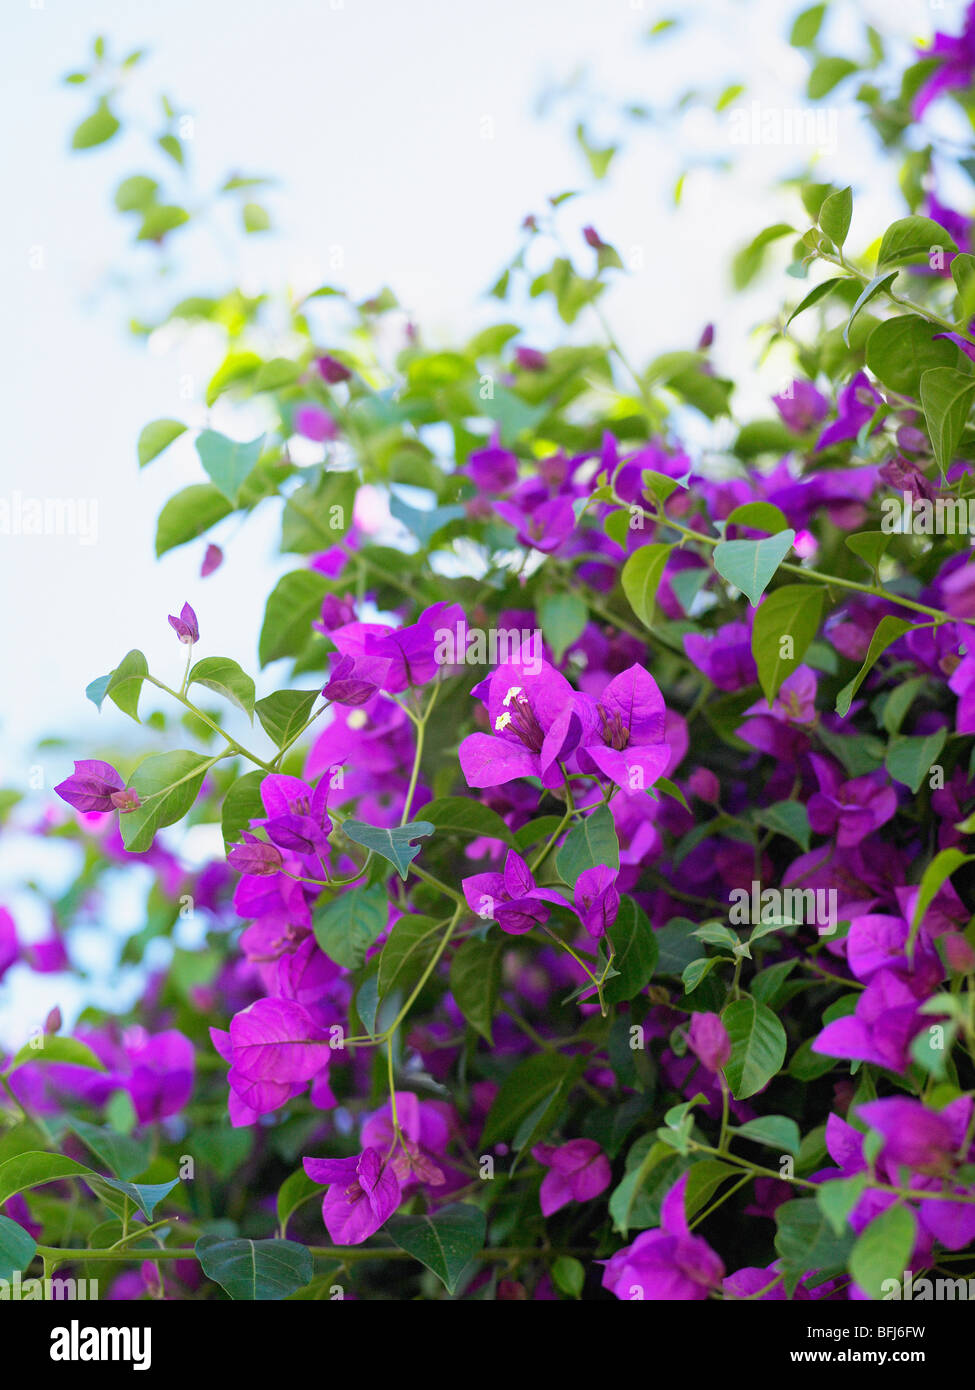 Clinging Vine Stock Photos Clinging Vine Stock Images Alamy